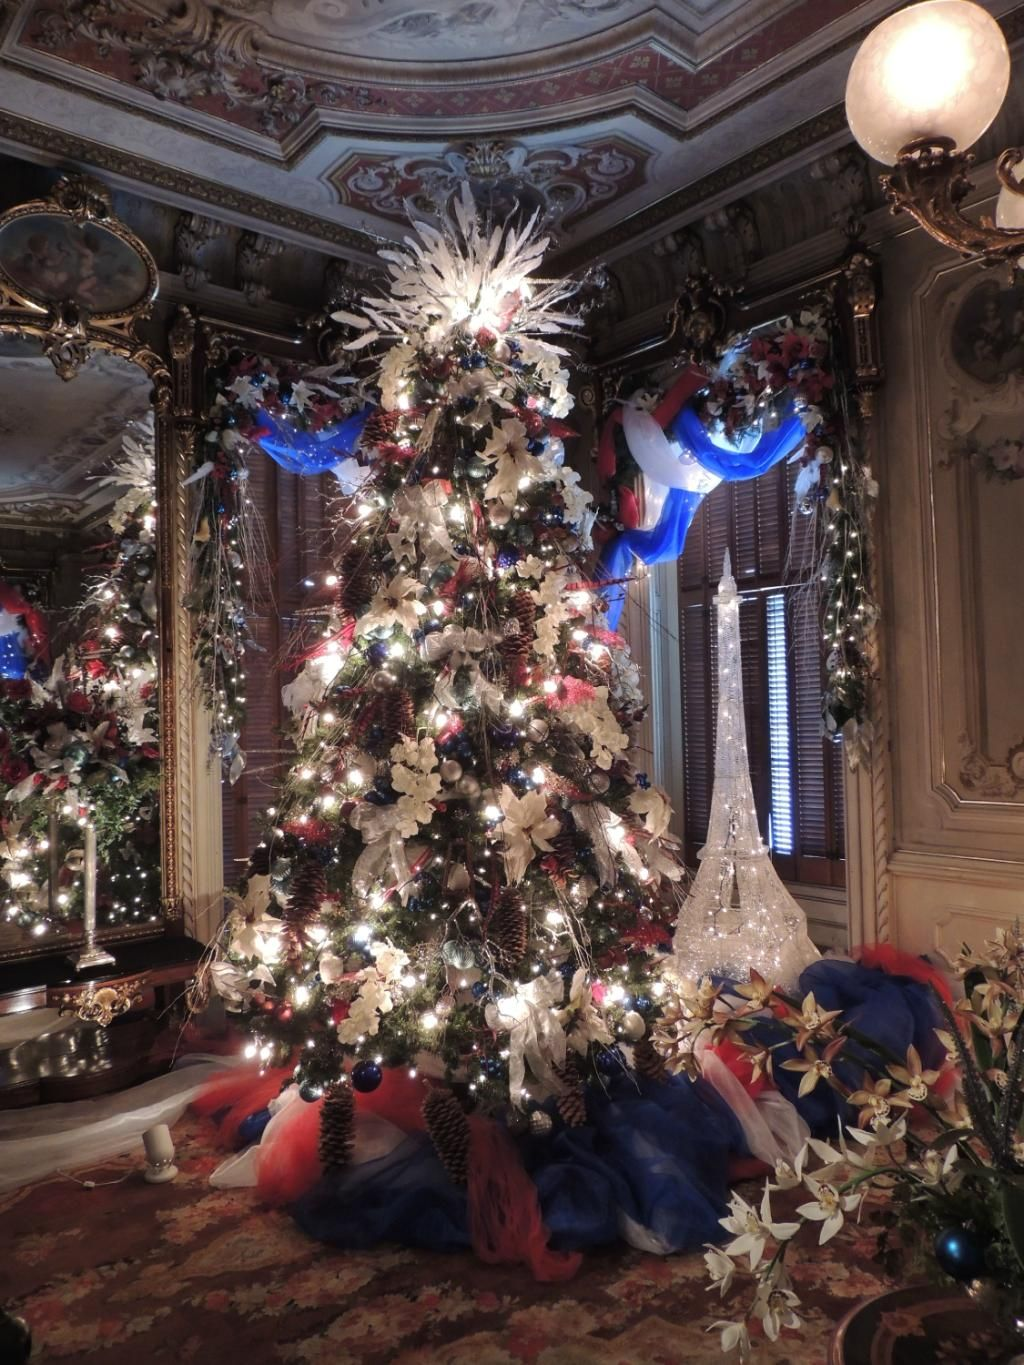 Victoria Mansion Christmas 2020 Victoria Mansion | Christmas world, Royal christmas, Christmas